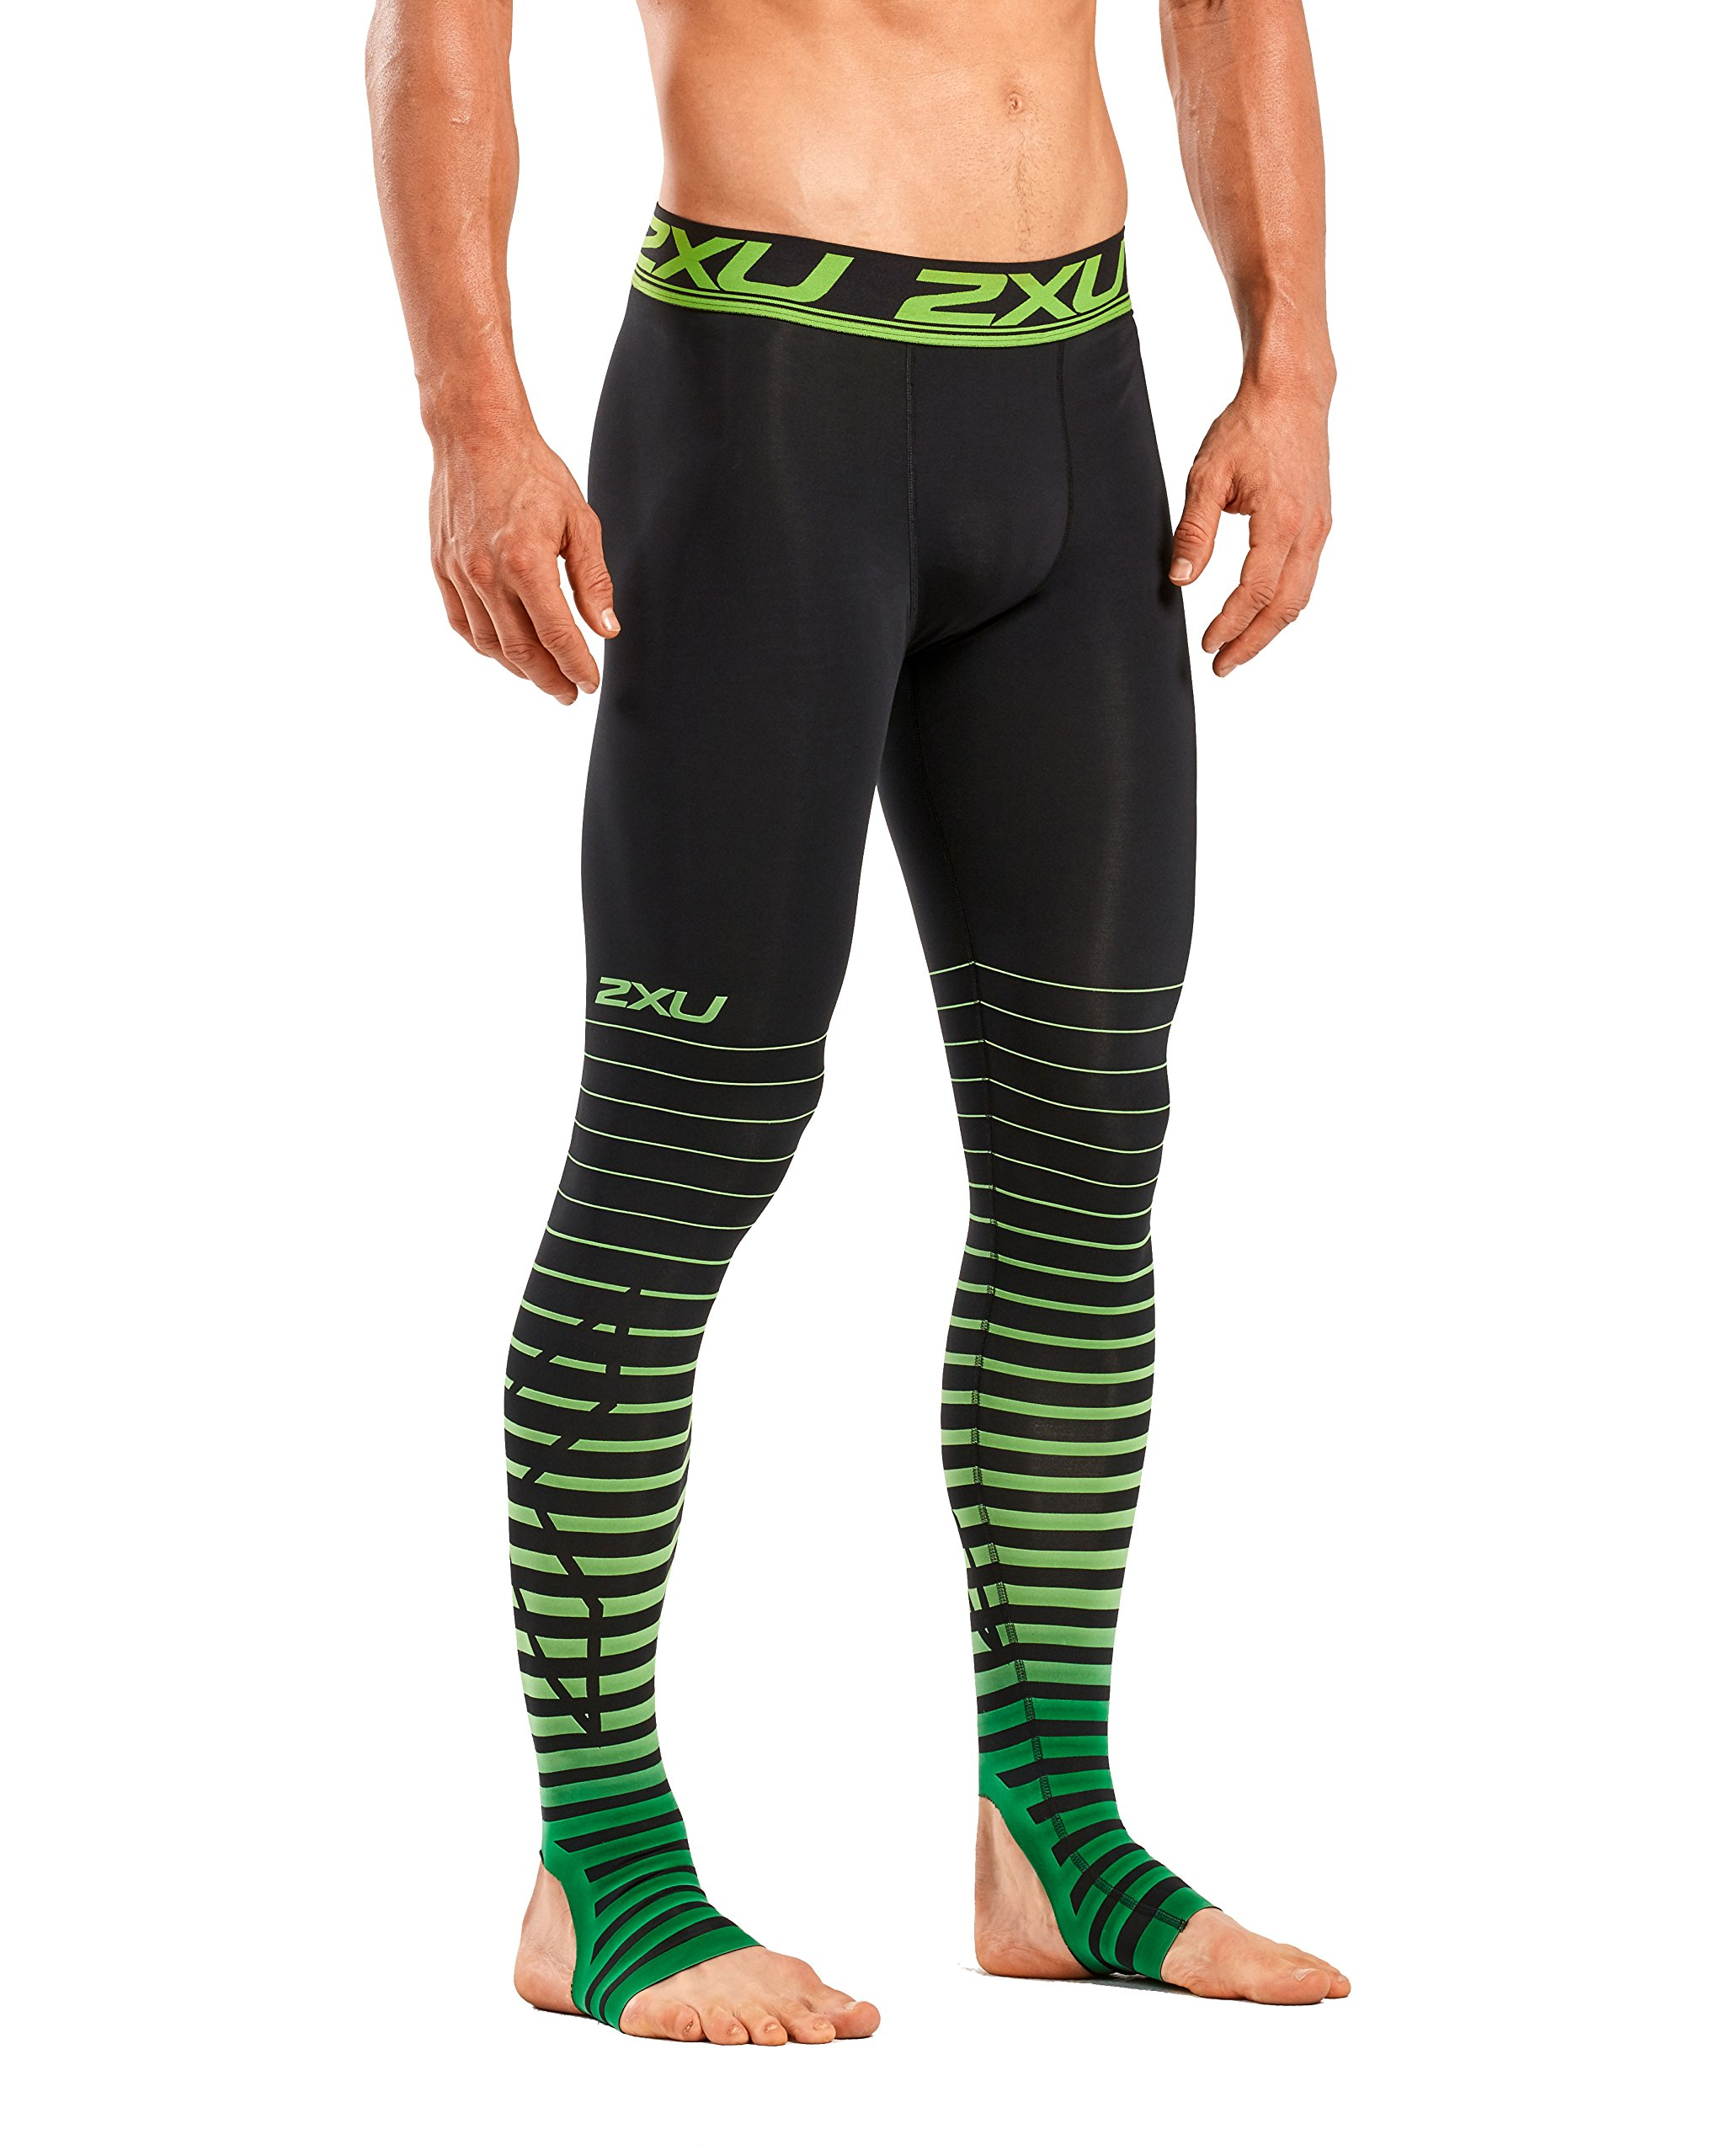 2XU Men's Elite Power Recovery Compression Tights, Black/Green, Small/Tall